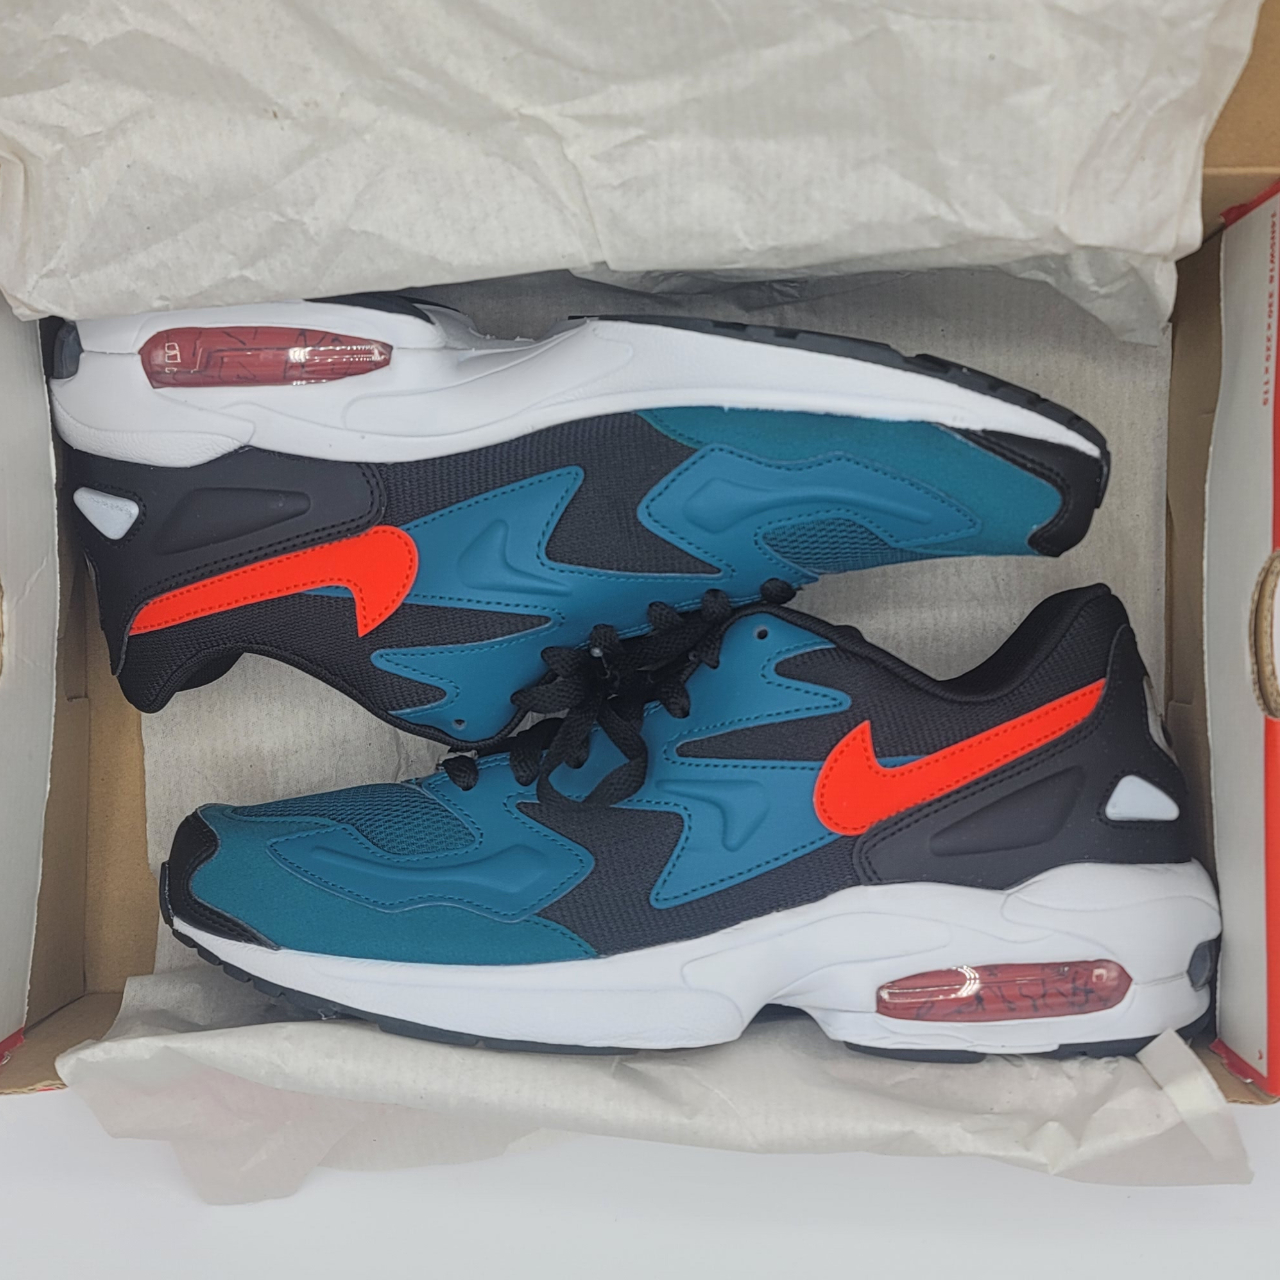 Product Image 1 - Nike Air Max2 Light The design